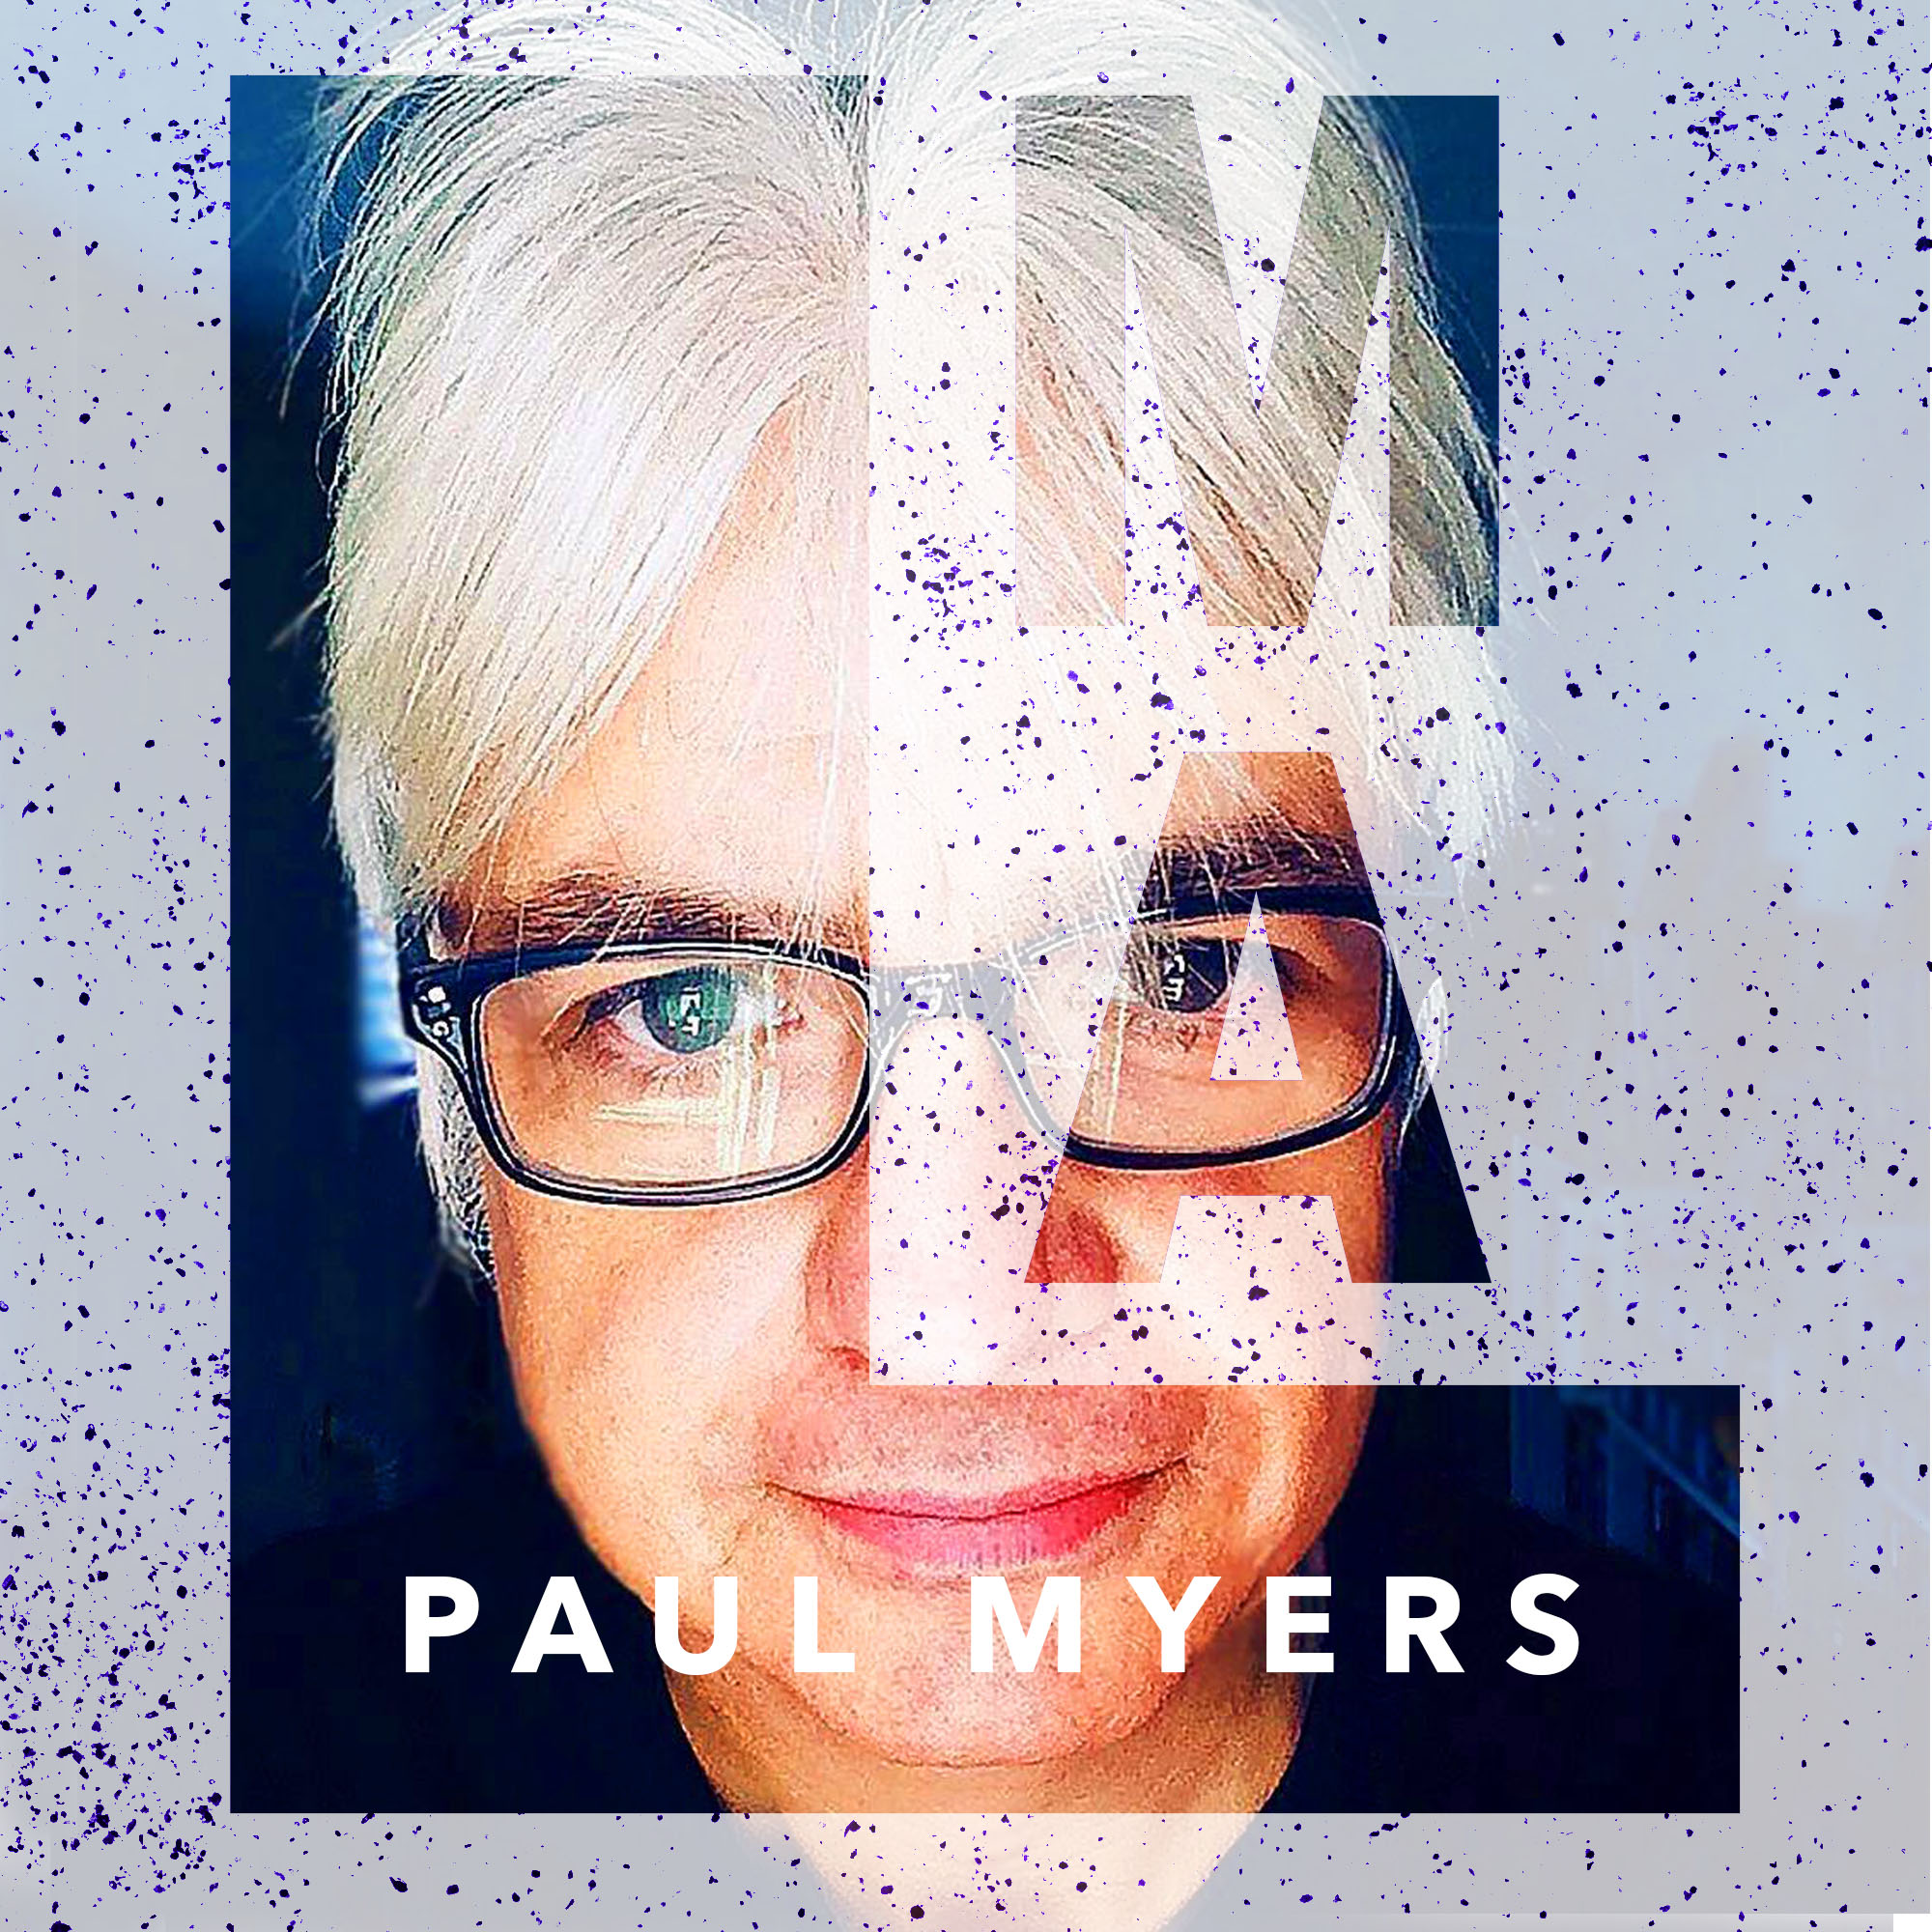 002 - Paul Myers - Alcoholism